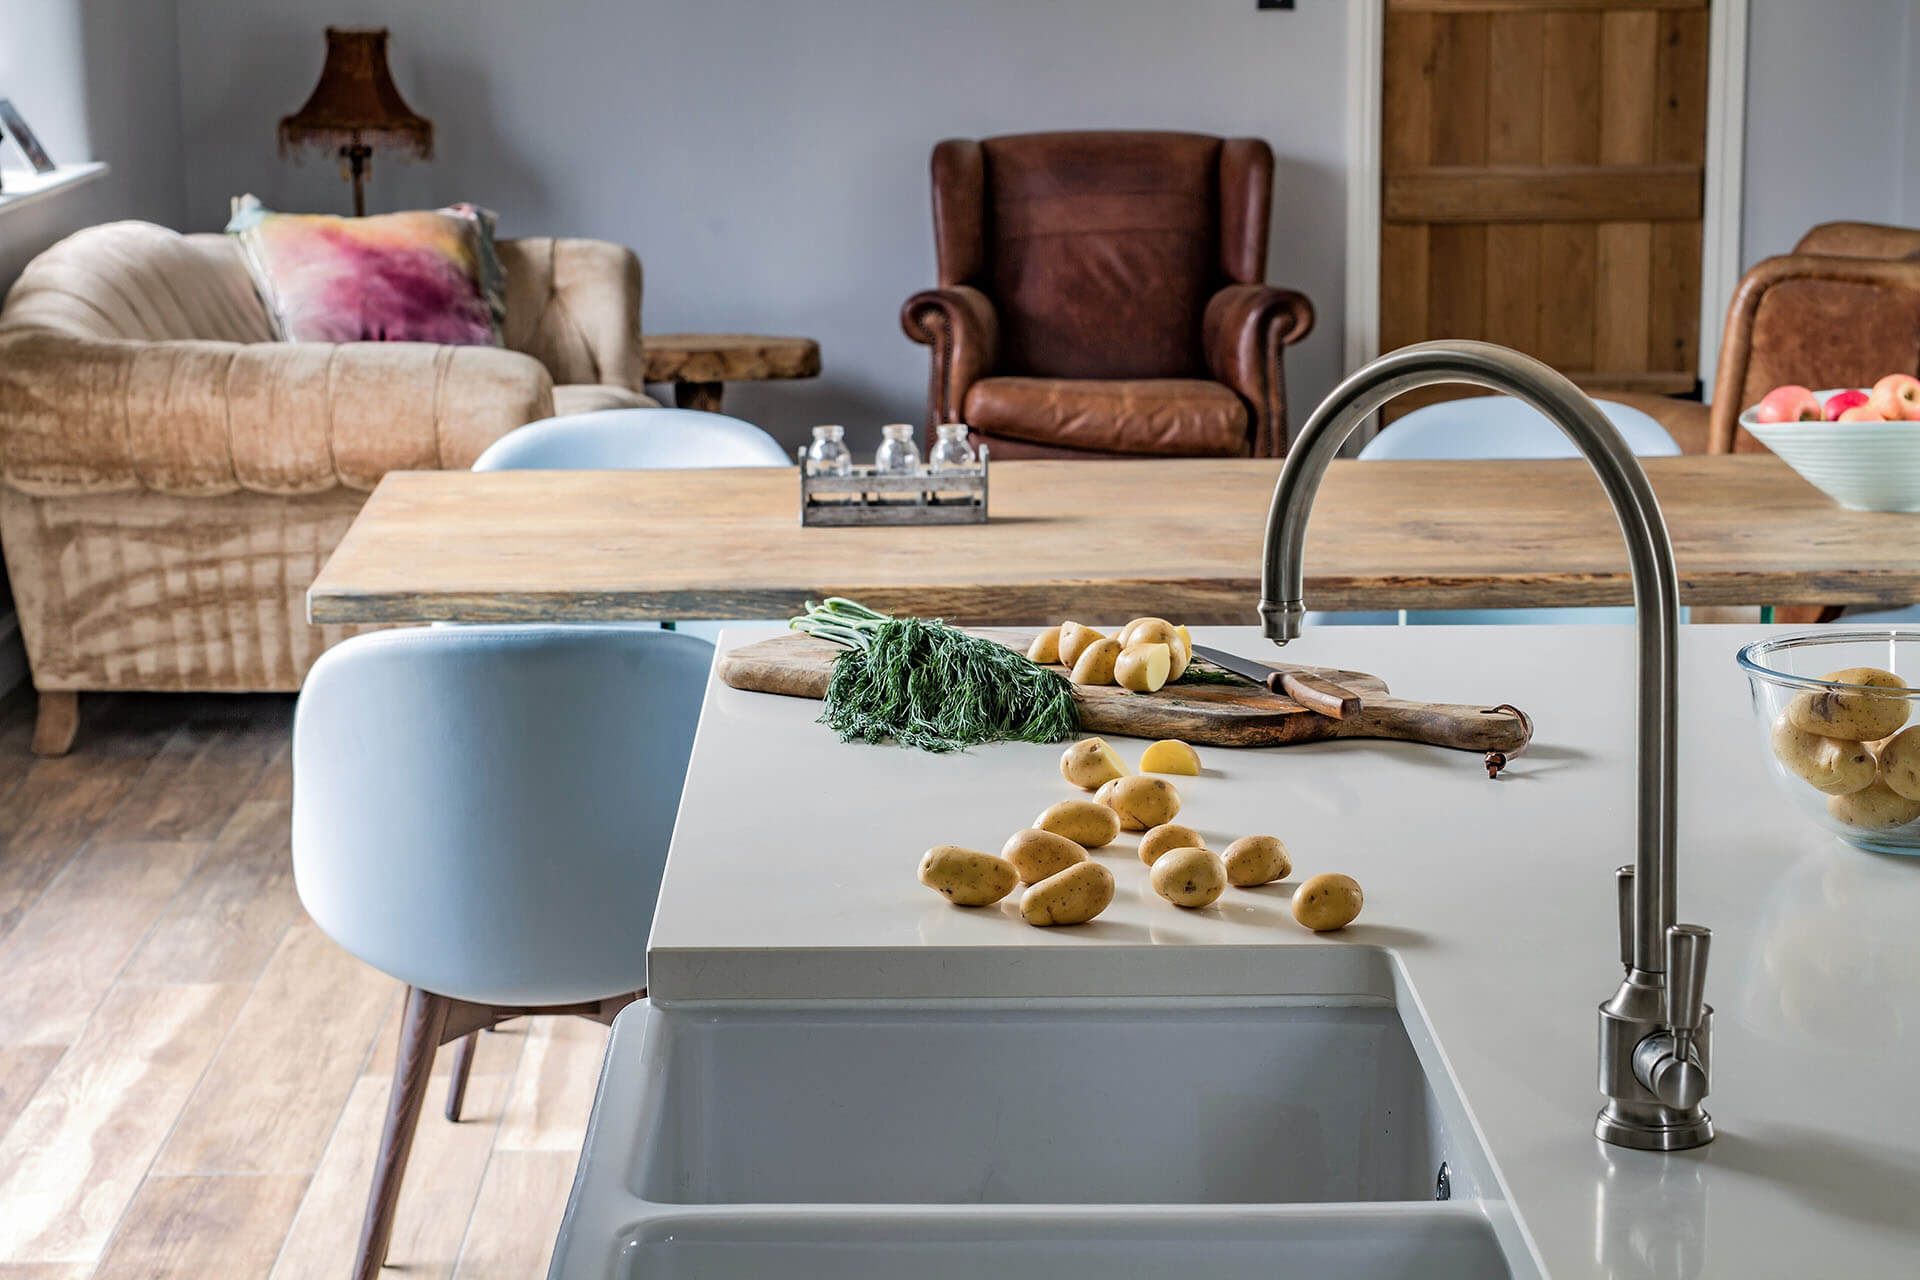 Rockhouse Barn conversion Shaker Kitchen with Shaws classic double Belfast sink and Abode mixer tap